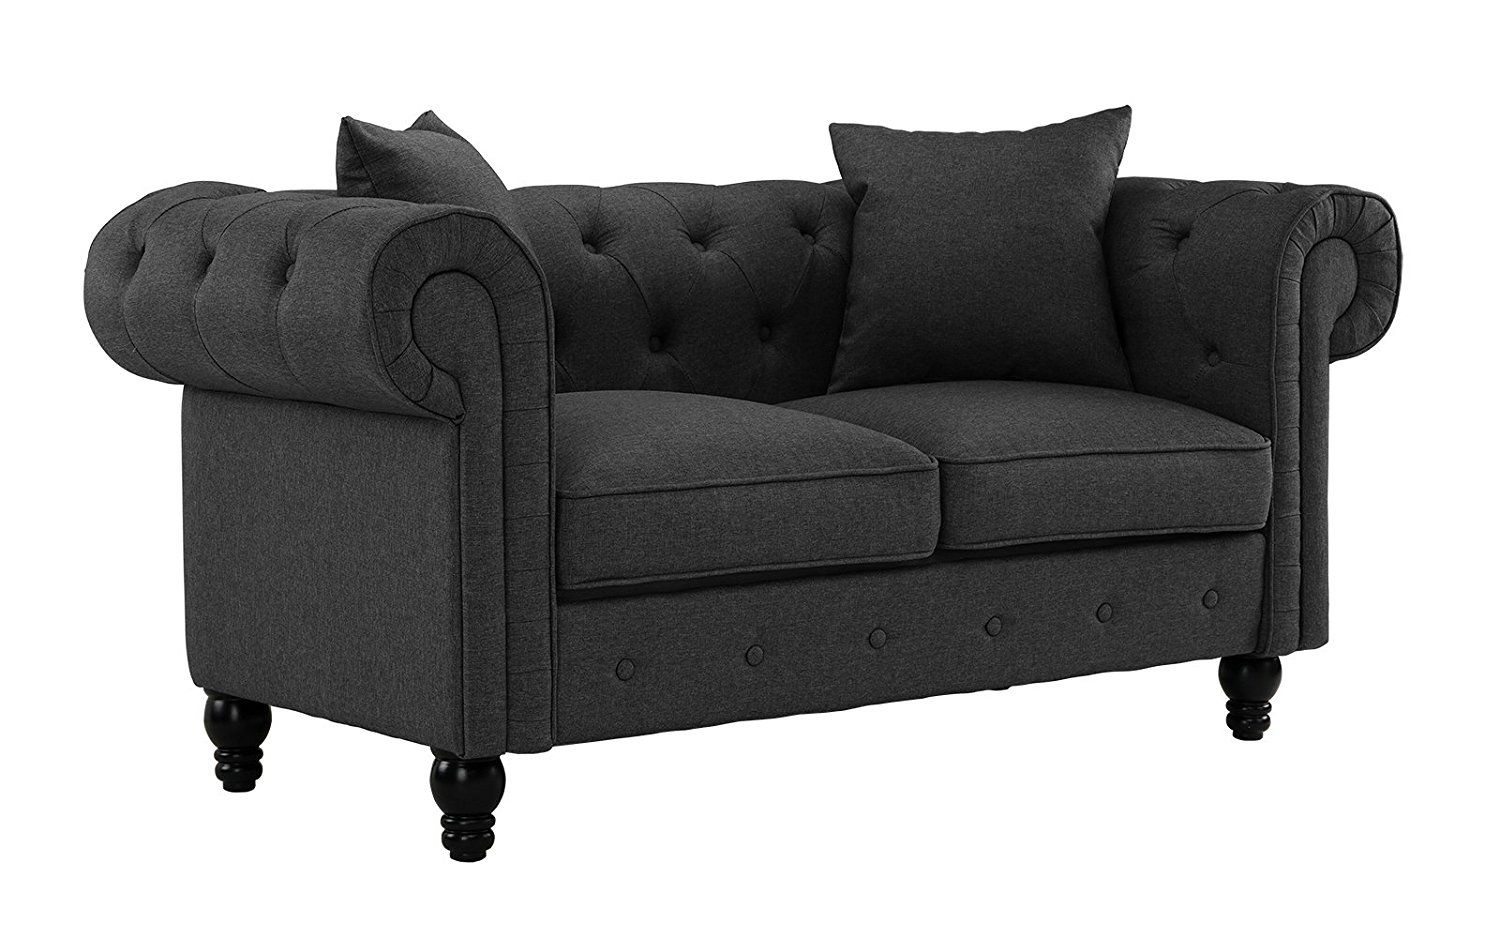 Amazon Com Divano Roma Furniture Classic Linen Fabric Scroll Arm Tufted Button Chesterfield Style Loveseat Couch Dark Couch And Loveseat Love Seat Furniture